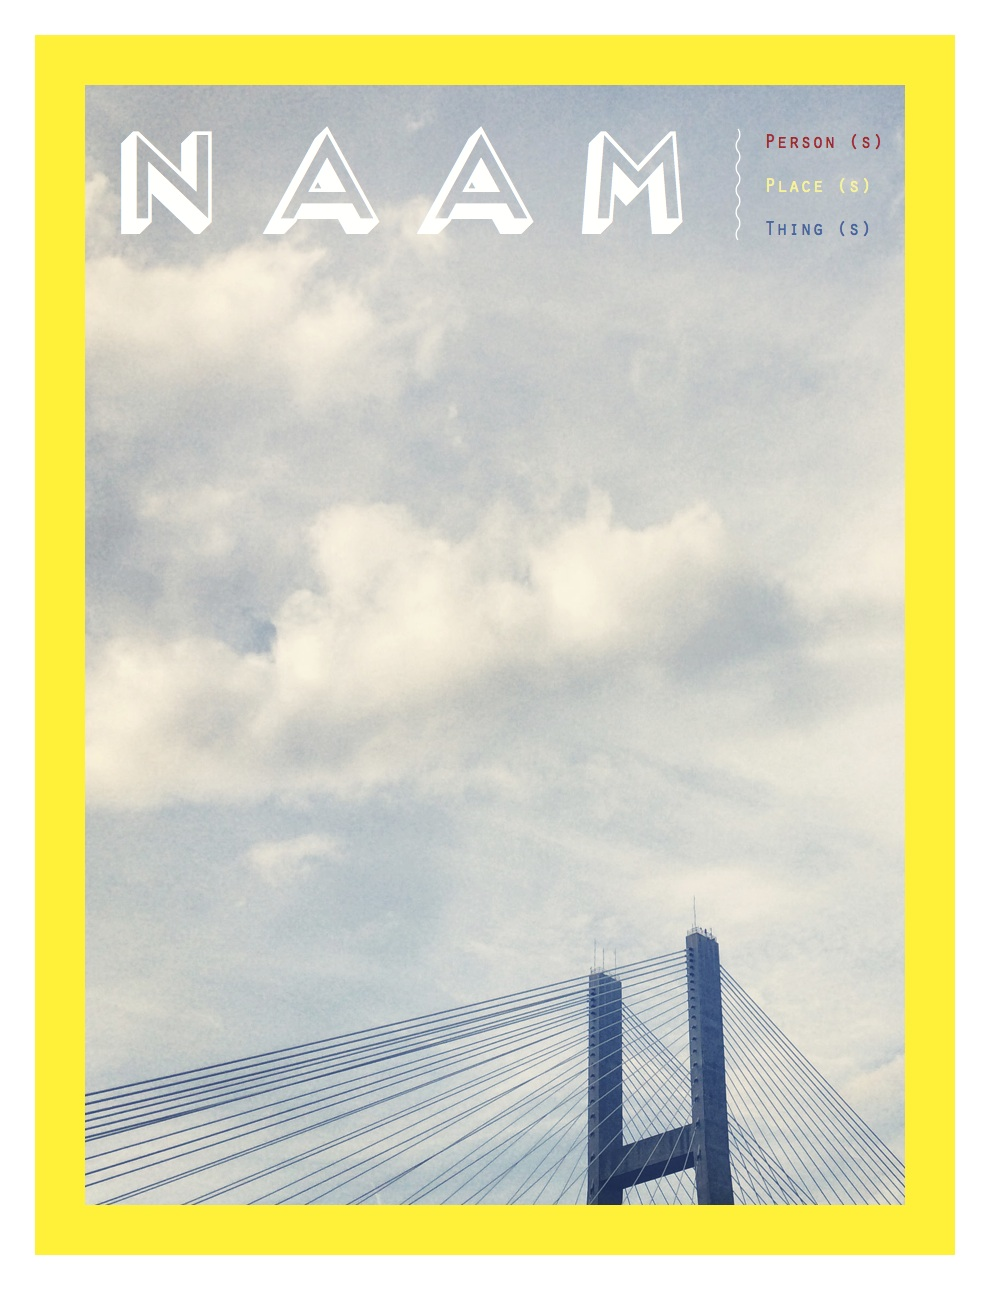 Cover of NAAM Magazine. Photo by Perri Rothenberg in Savannah, GA.